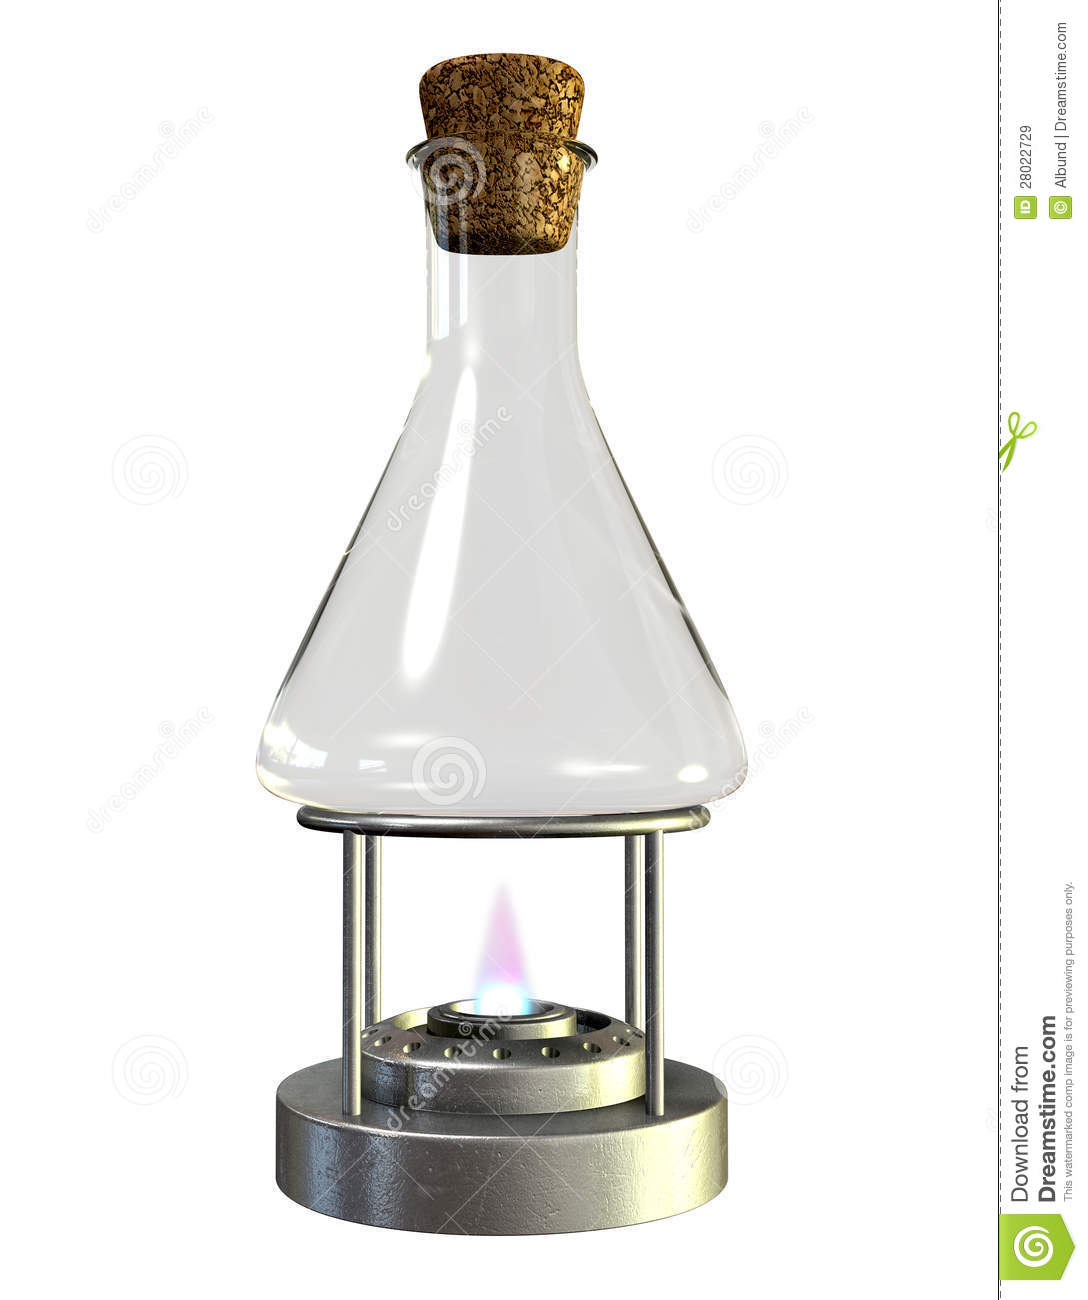 Bunsen Burner And Glass Jar Royalty Free Stock Images.